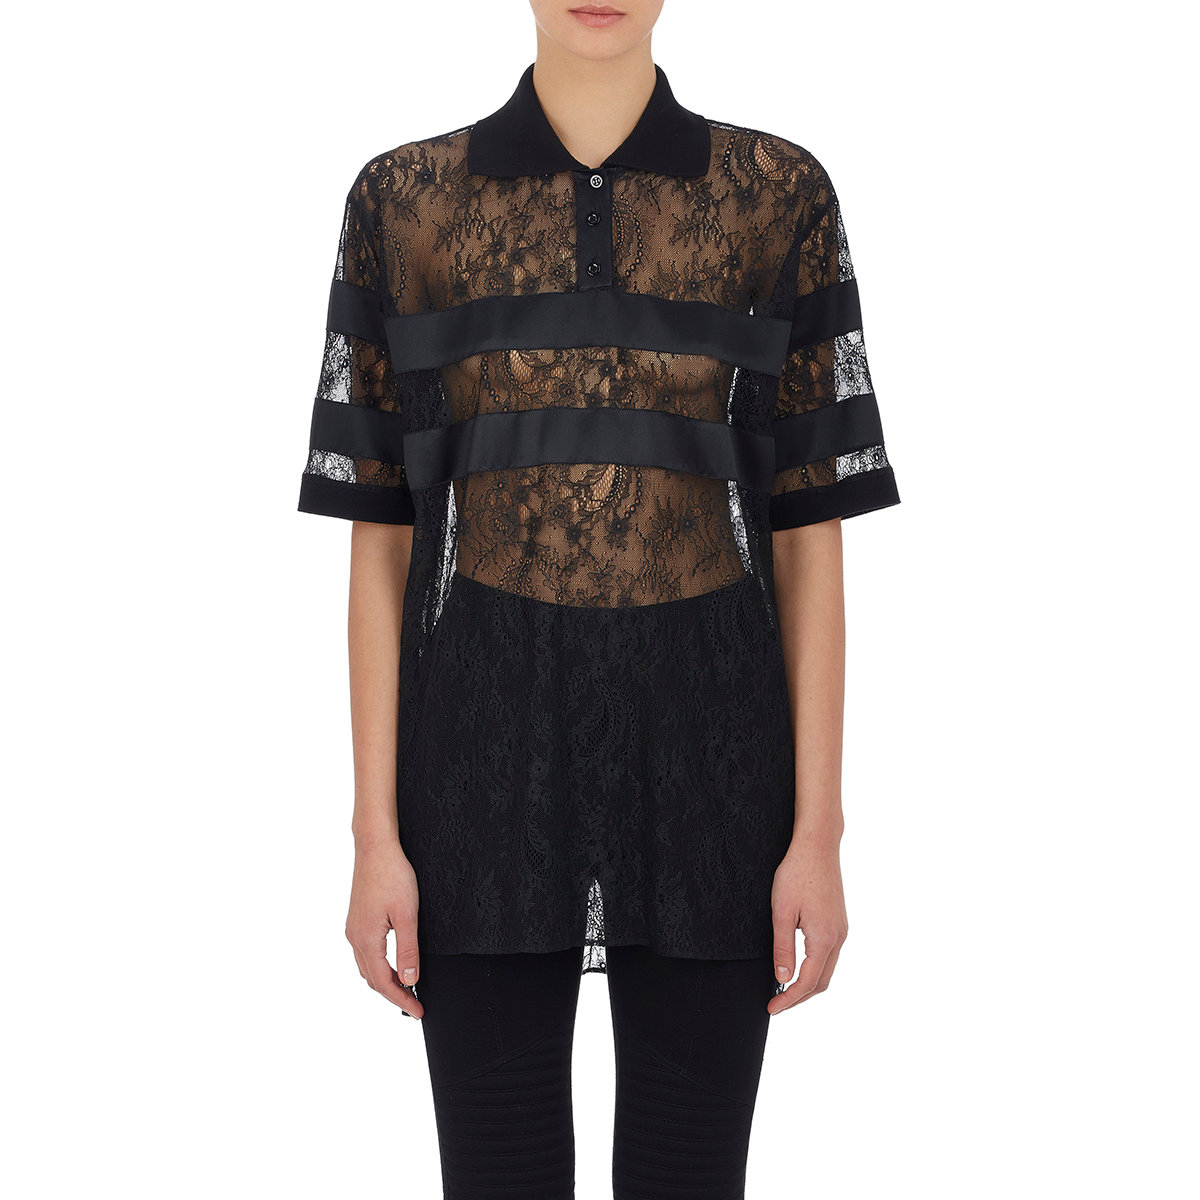 Lyst - Givenchy Women s Satin-striped Lace Polo Shirt in Black 78ba60b15